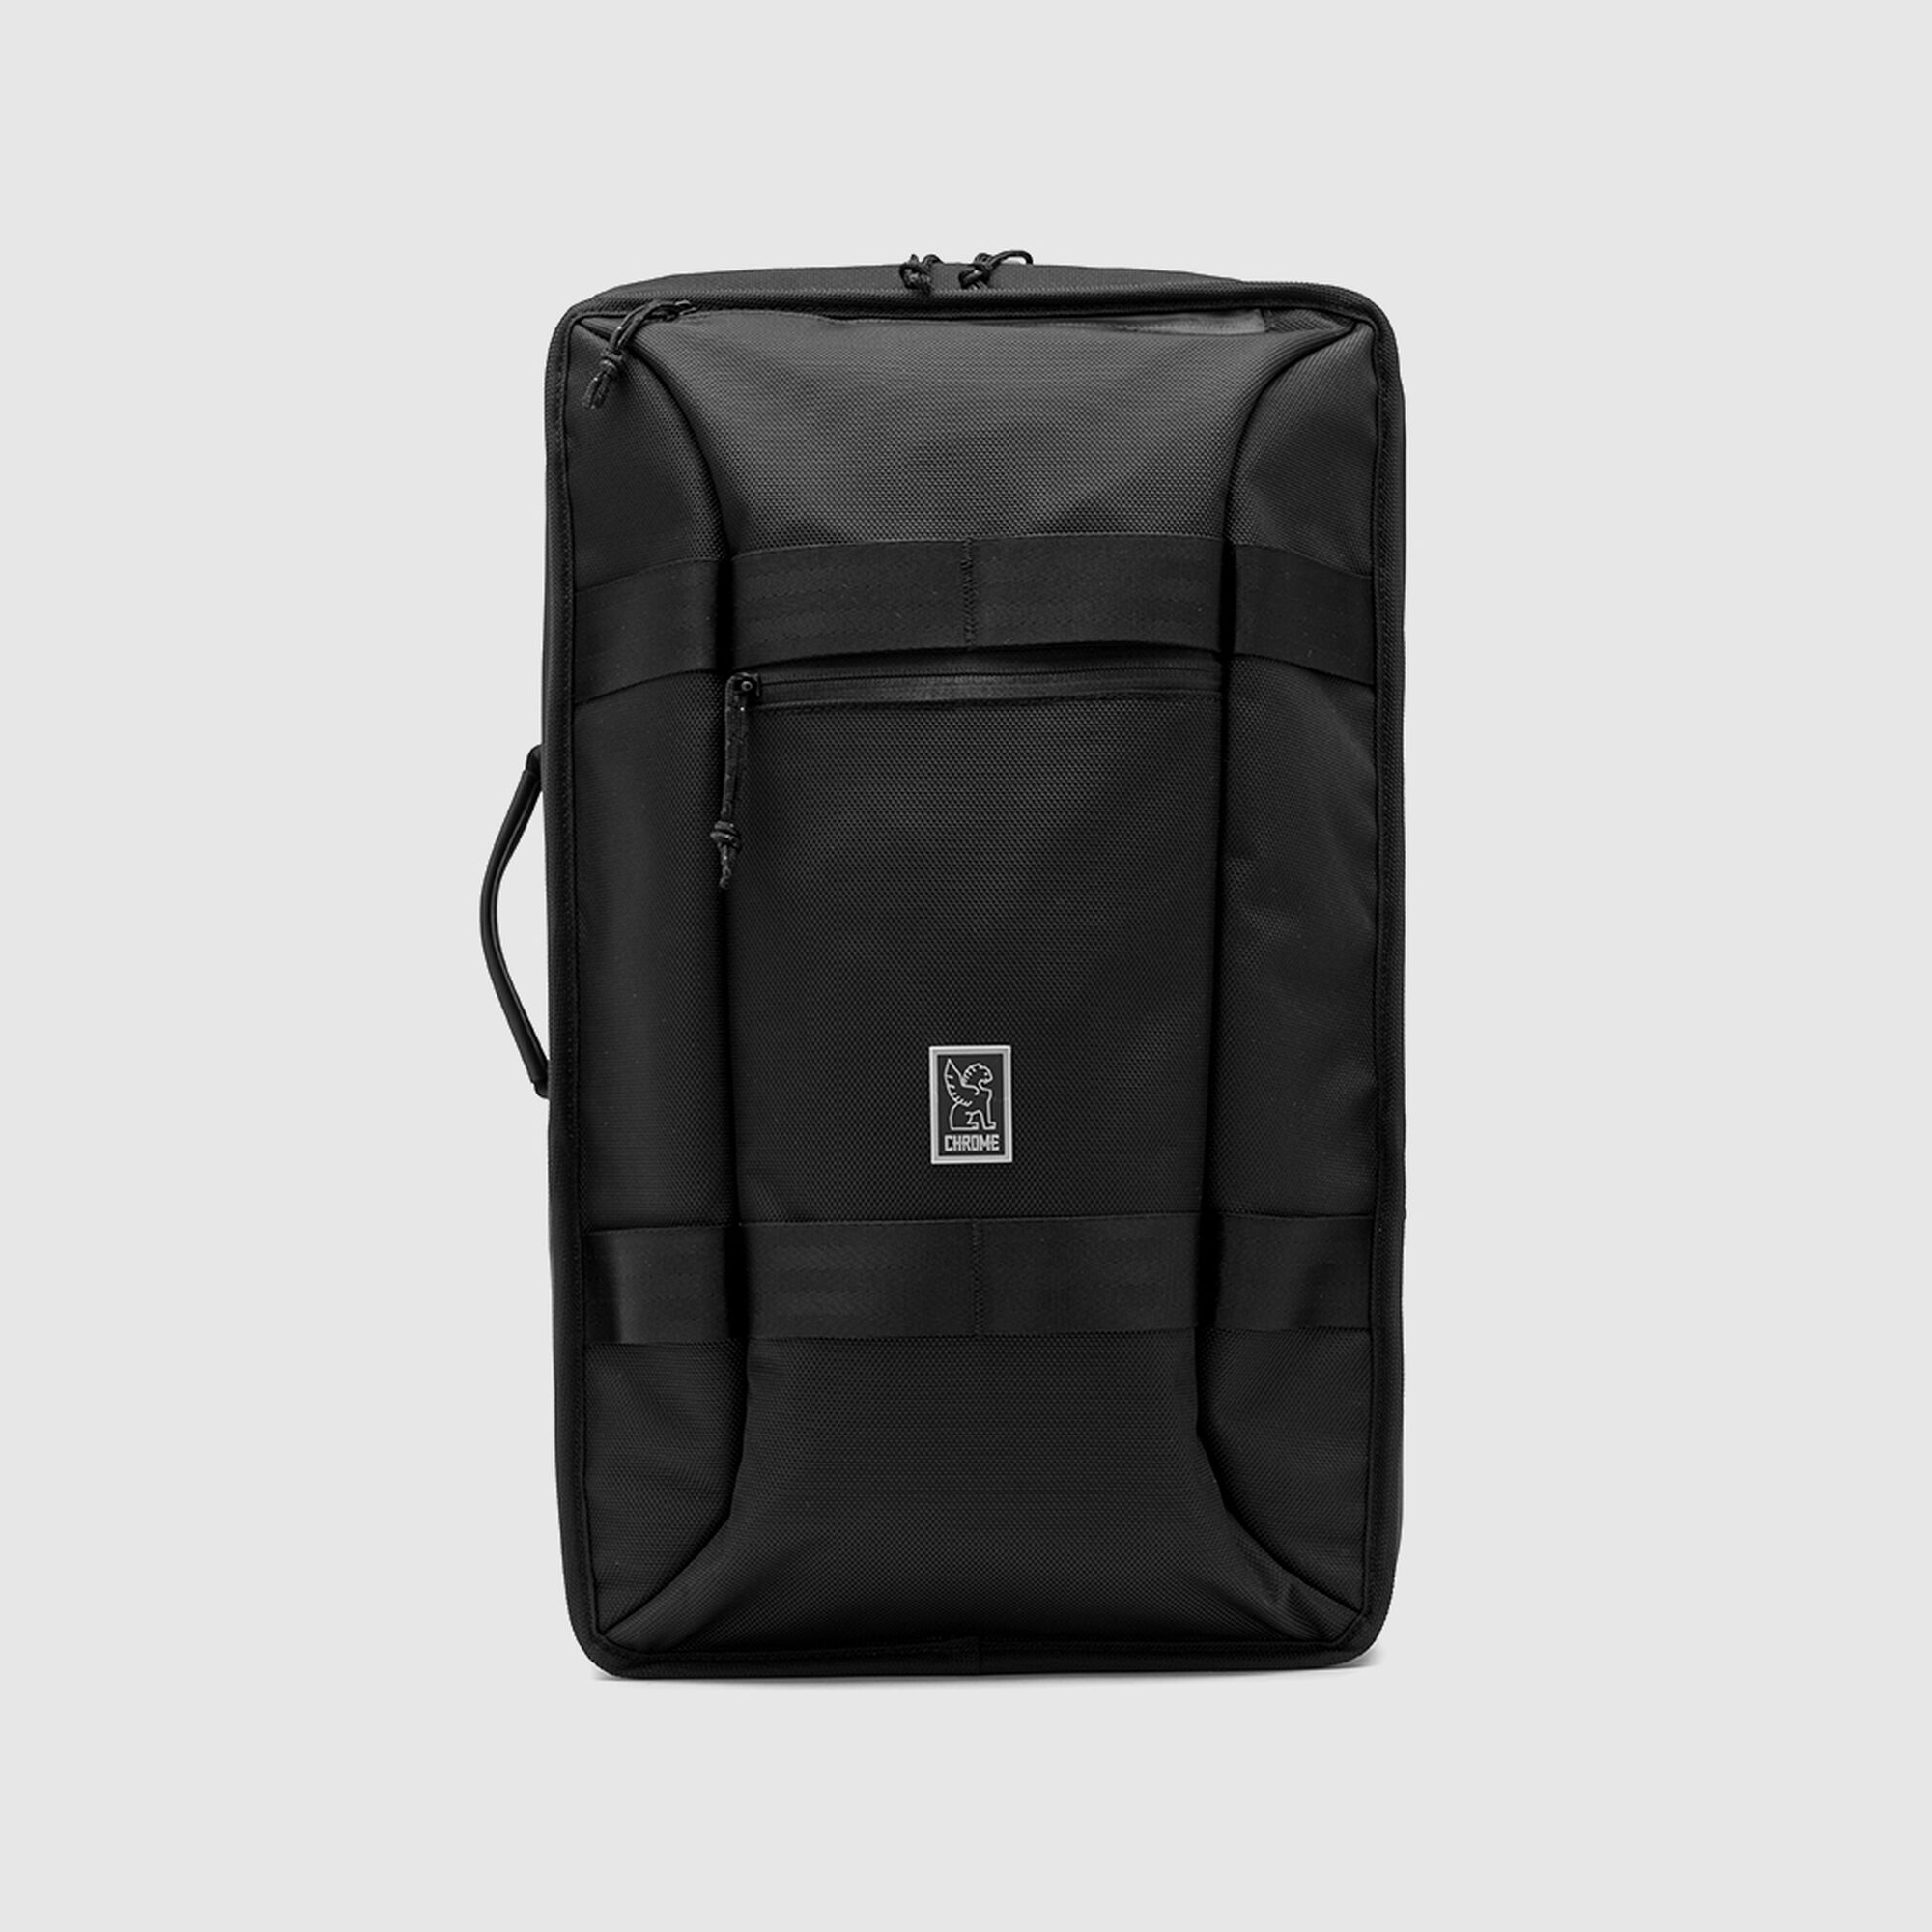 Hightower Transit Backpack In All Black Small View